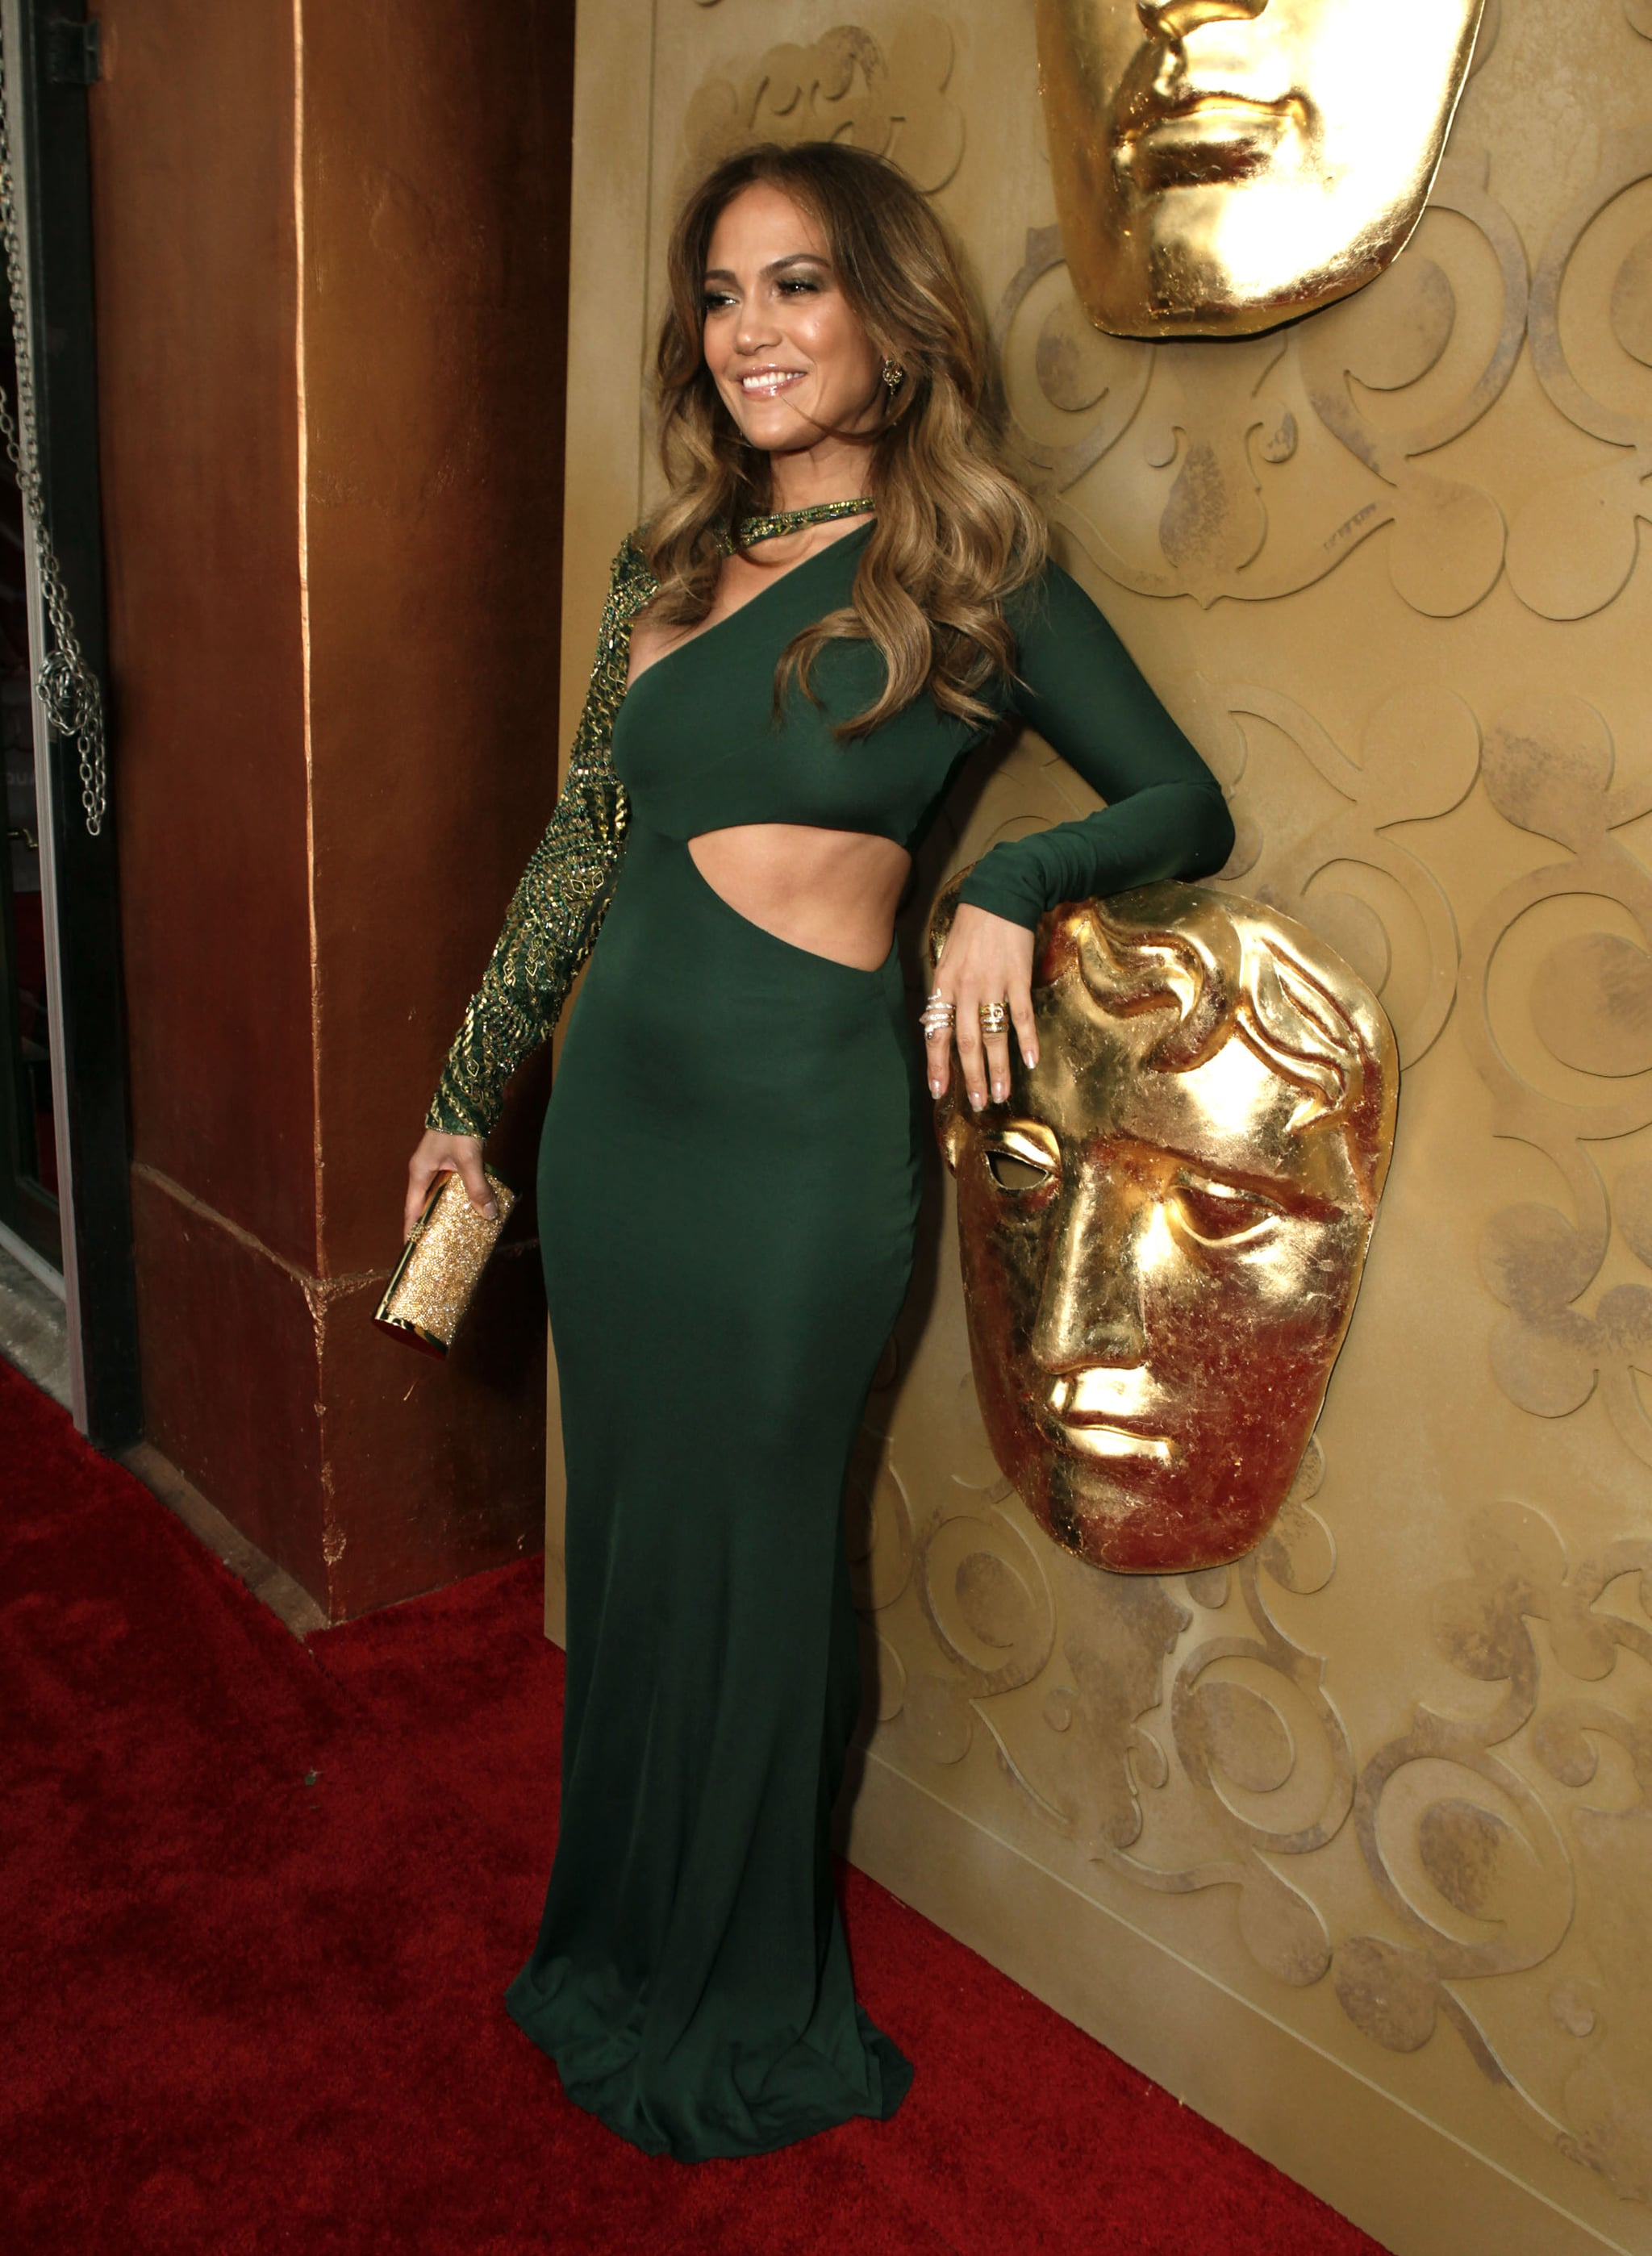 J Lo at the BAFTA Brits to Watch event in LA.